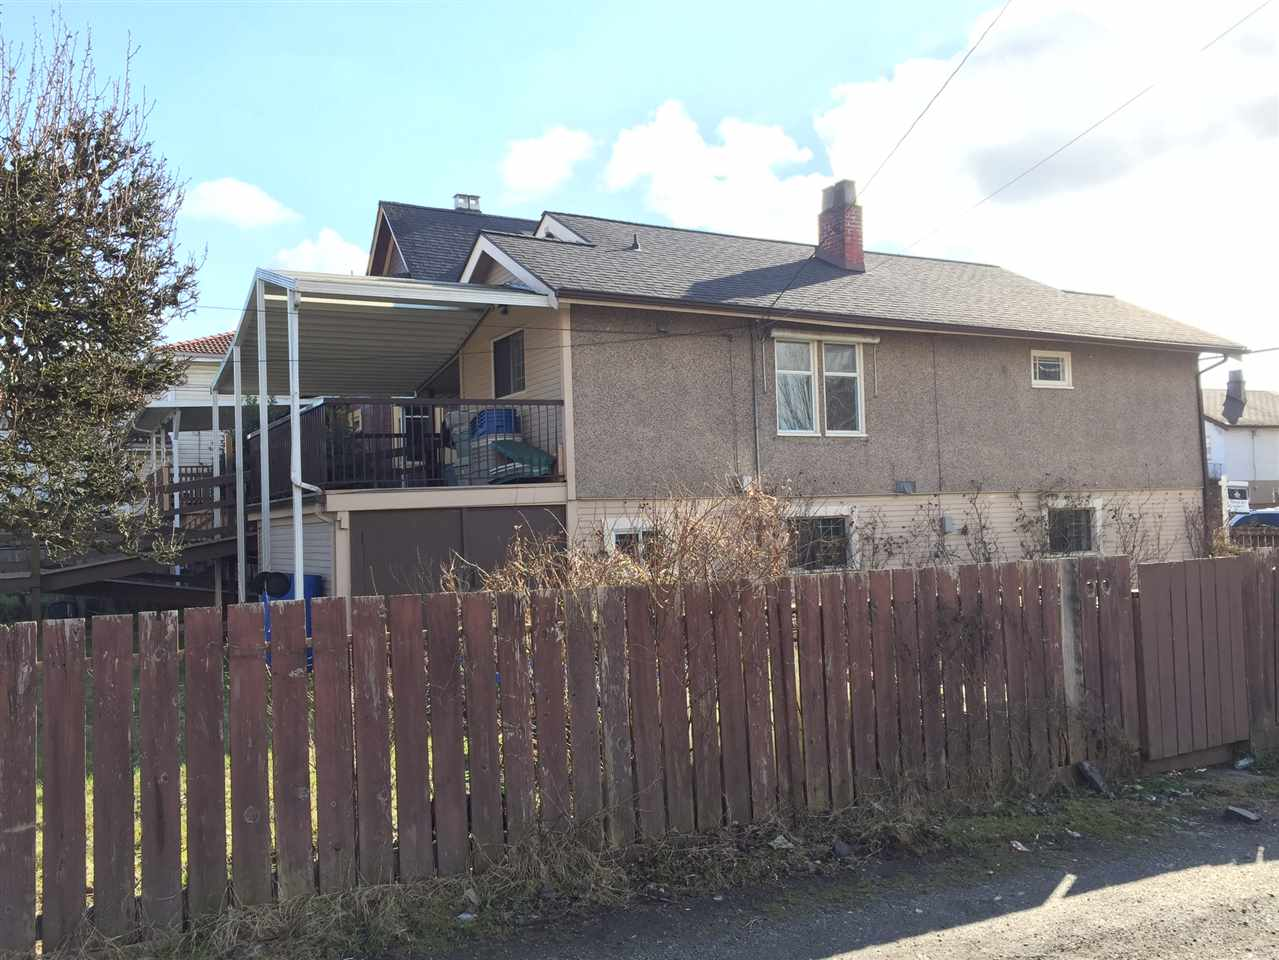 Photo 3: 727 E 26 Avenue in Vancouver: Fraser VE House for sale (Vancouver East)  : MLS® # R2143519